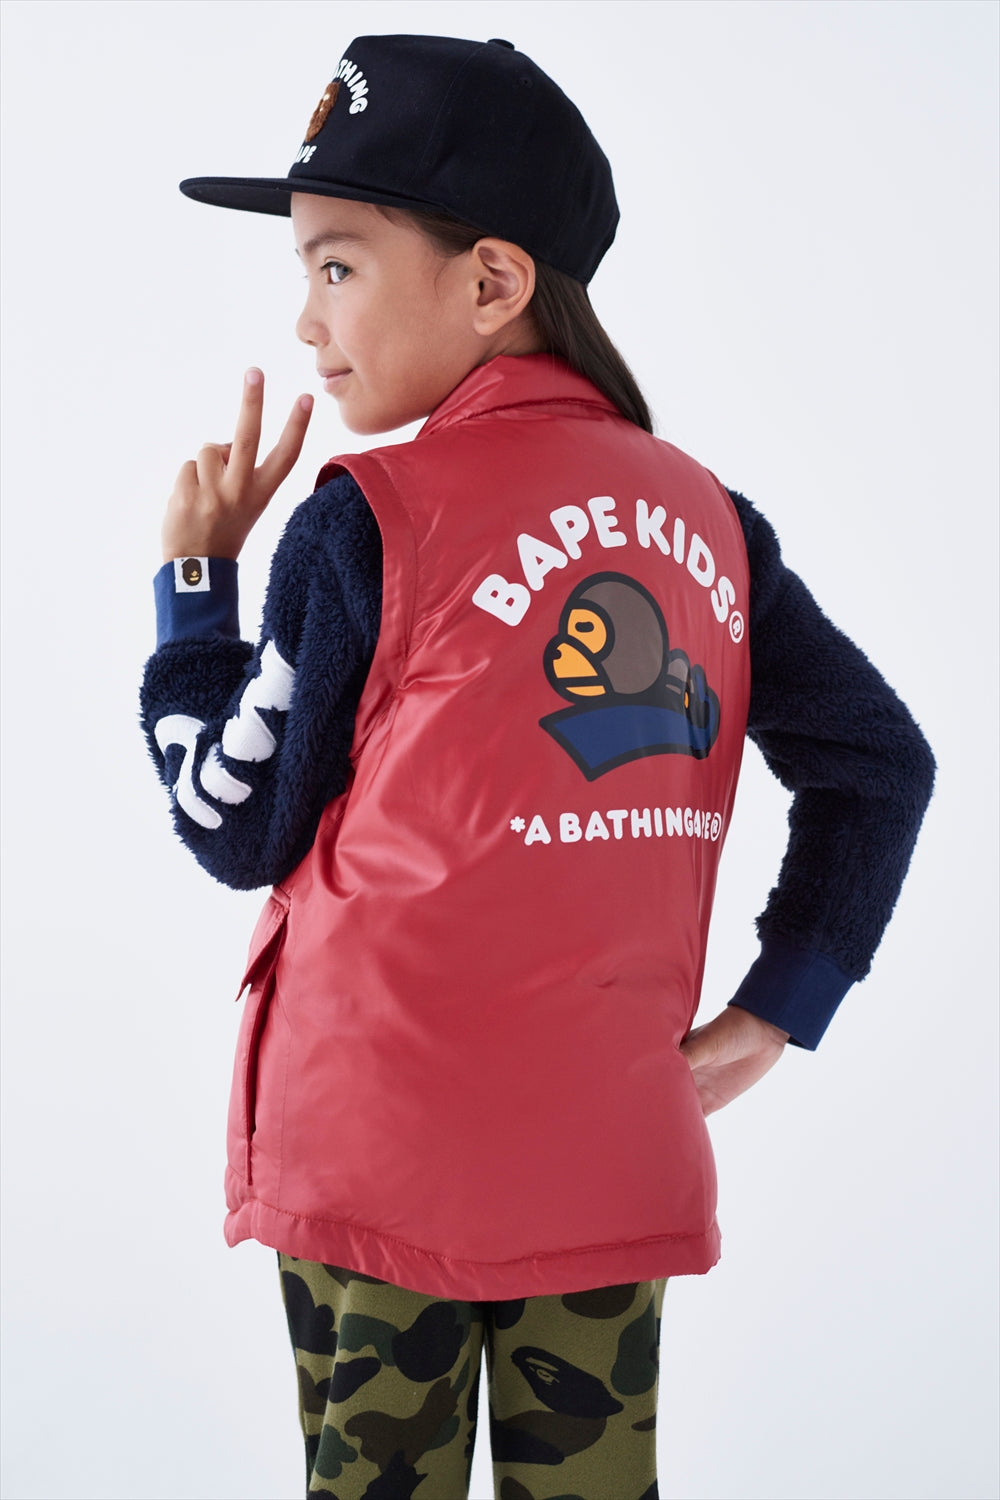 A BATHING APE 2019 AW KIDS' LOOKBOOK 31